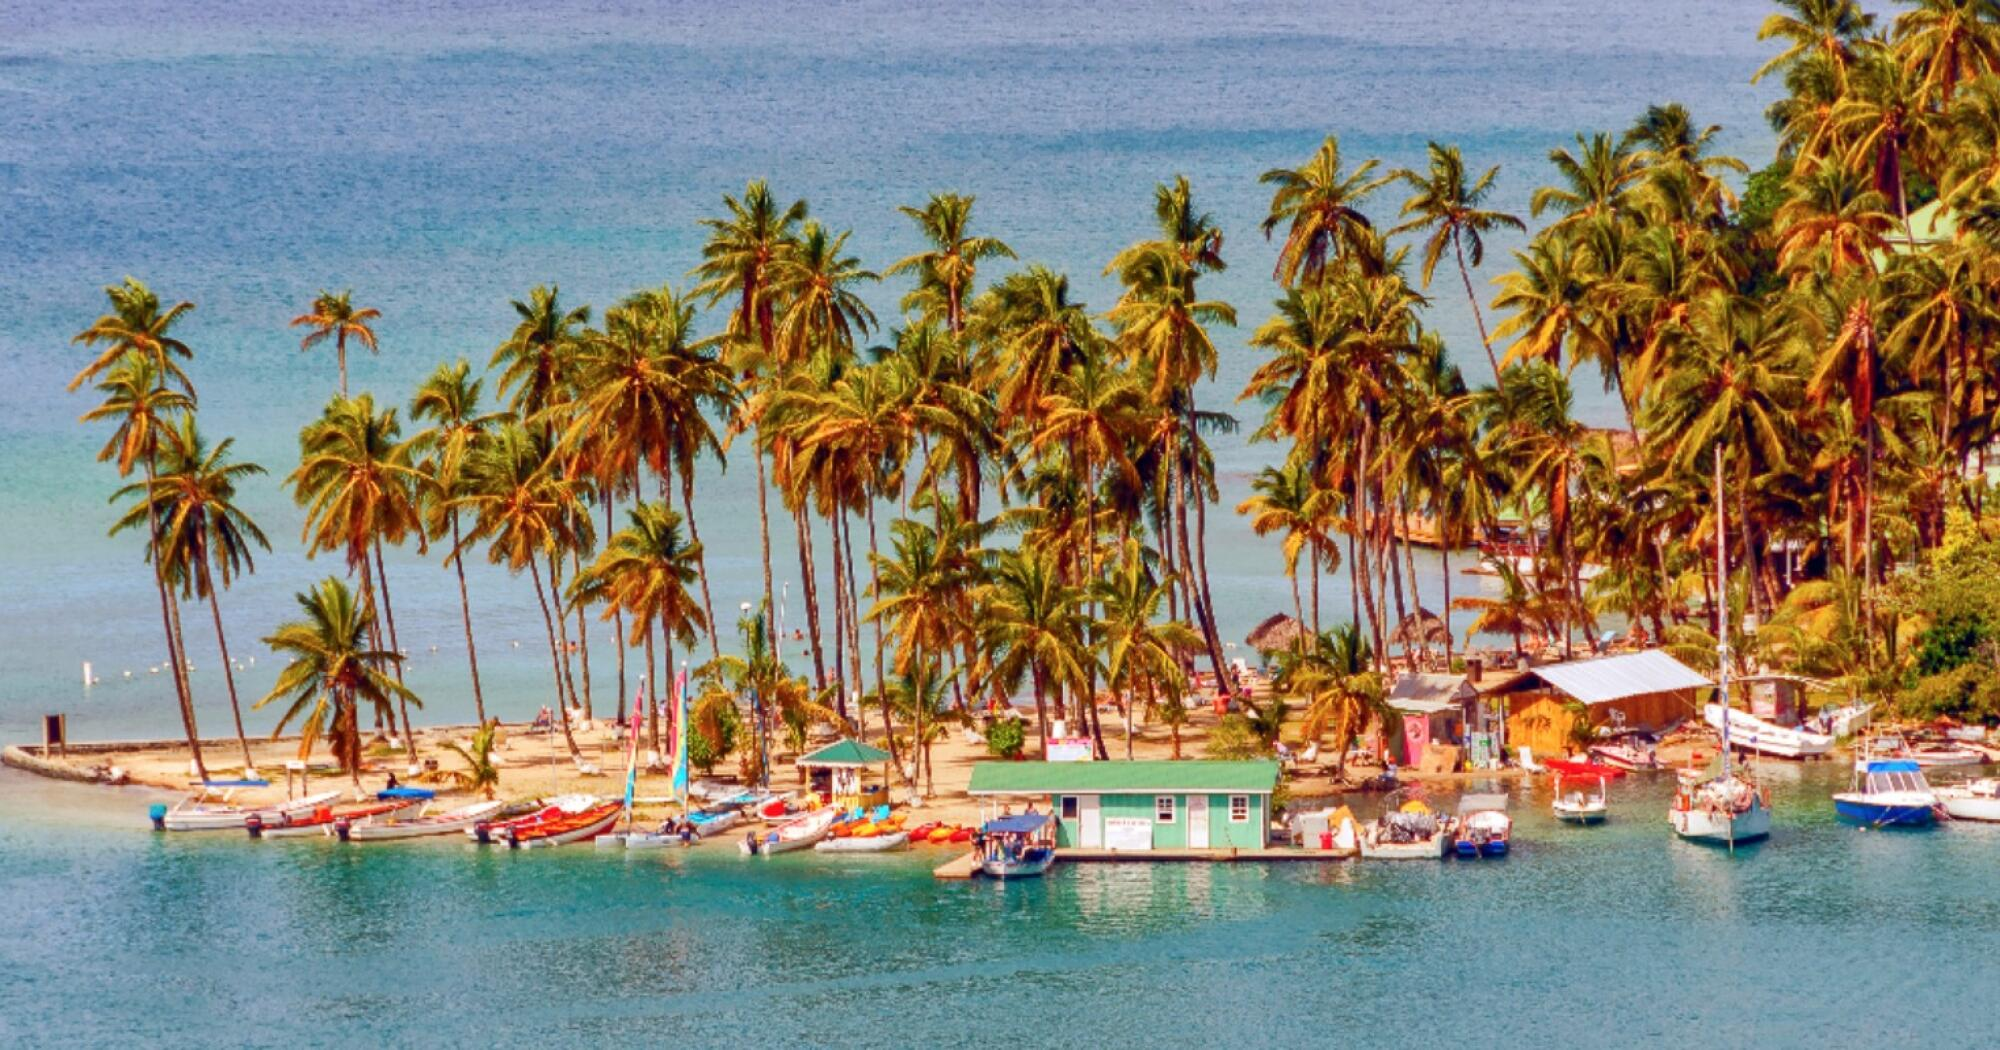 Explore The Beauty Of Caribbean: The Best Of A Sailing Cruise In Carabbean With All